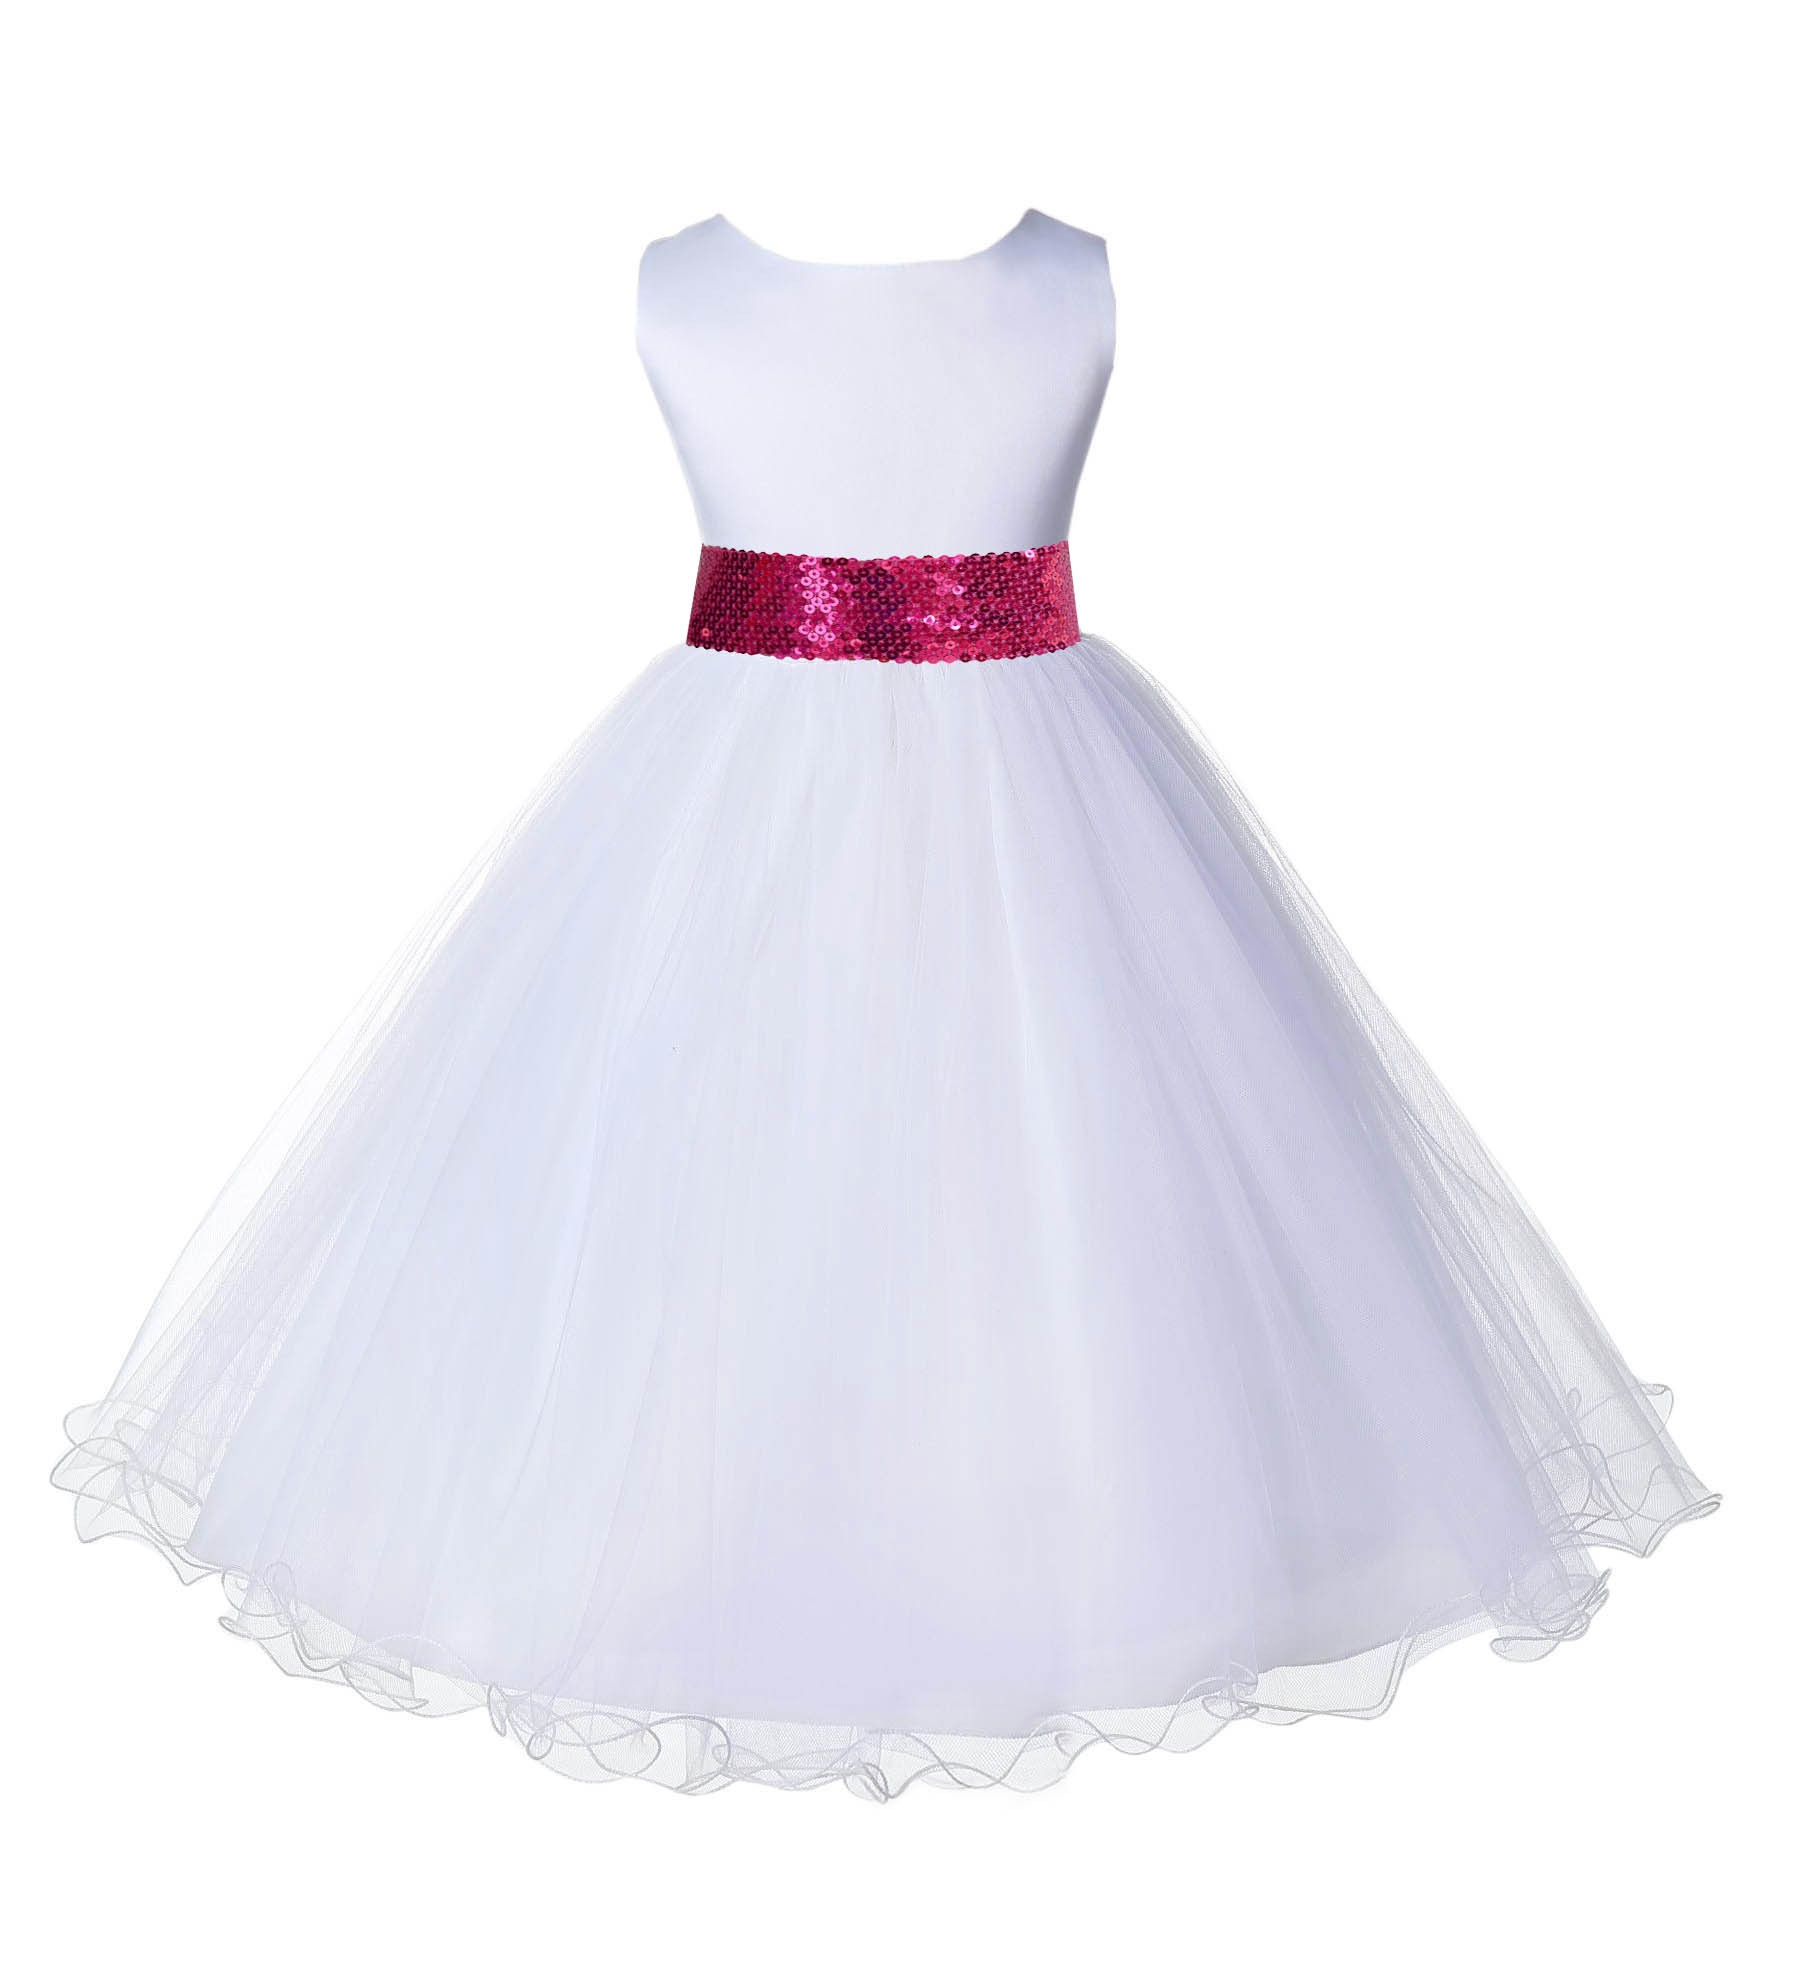 White Tulle Rattail Edge Fuchsia Sequin Sash Flower Girl Dress 829mh